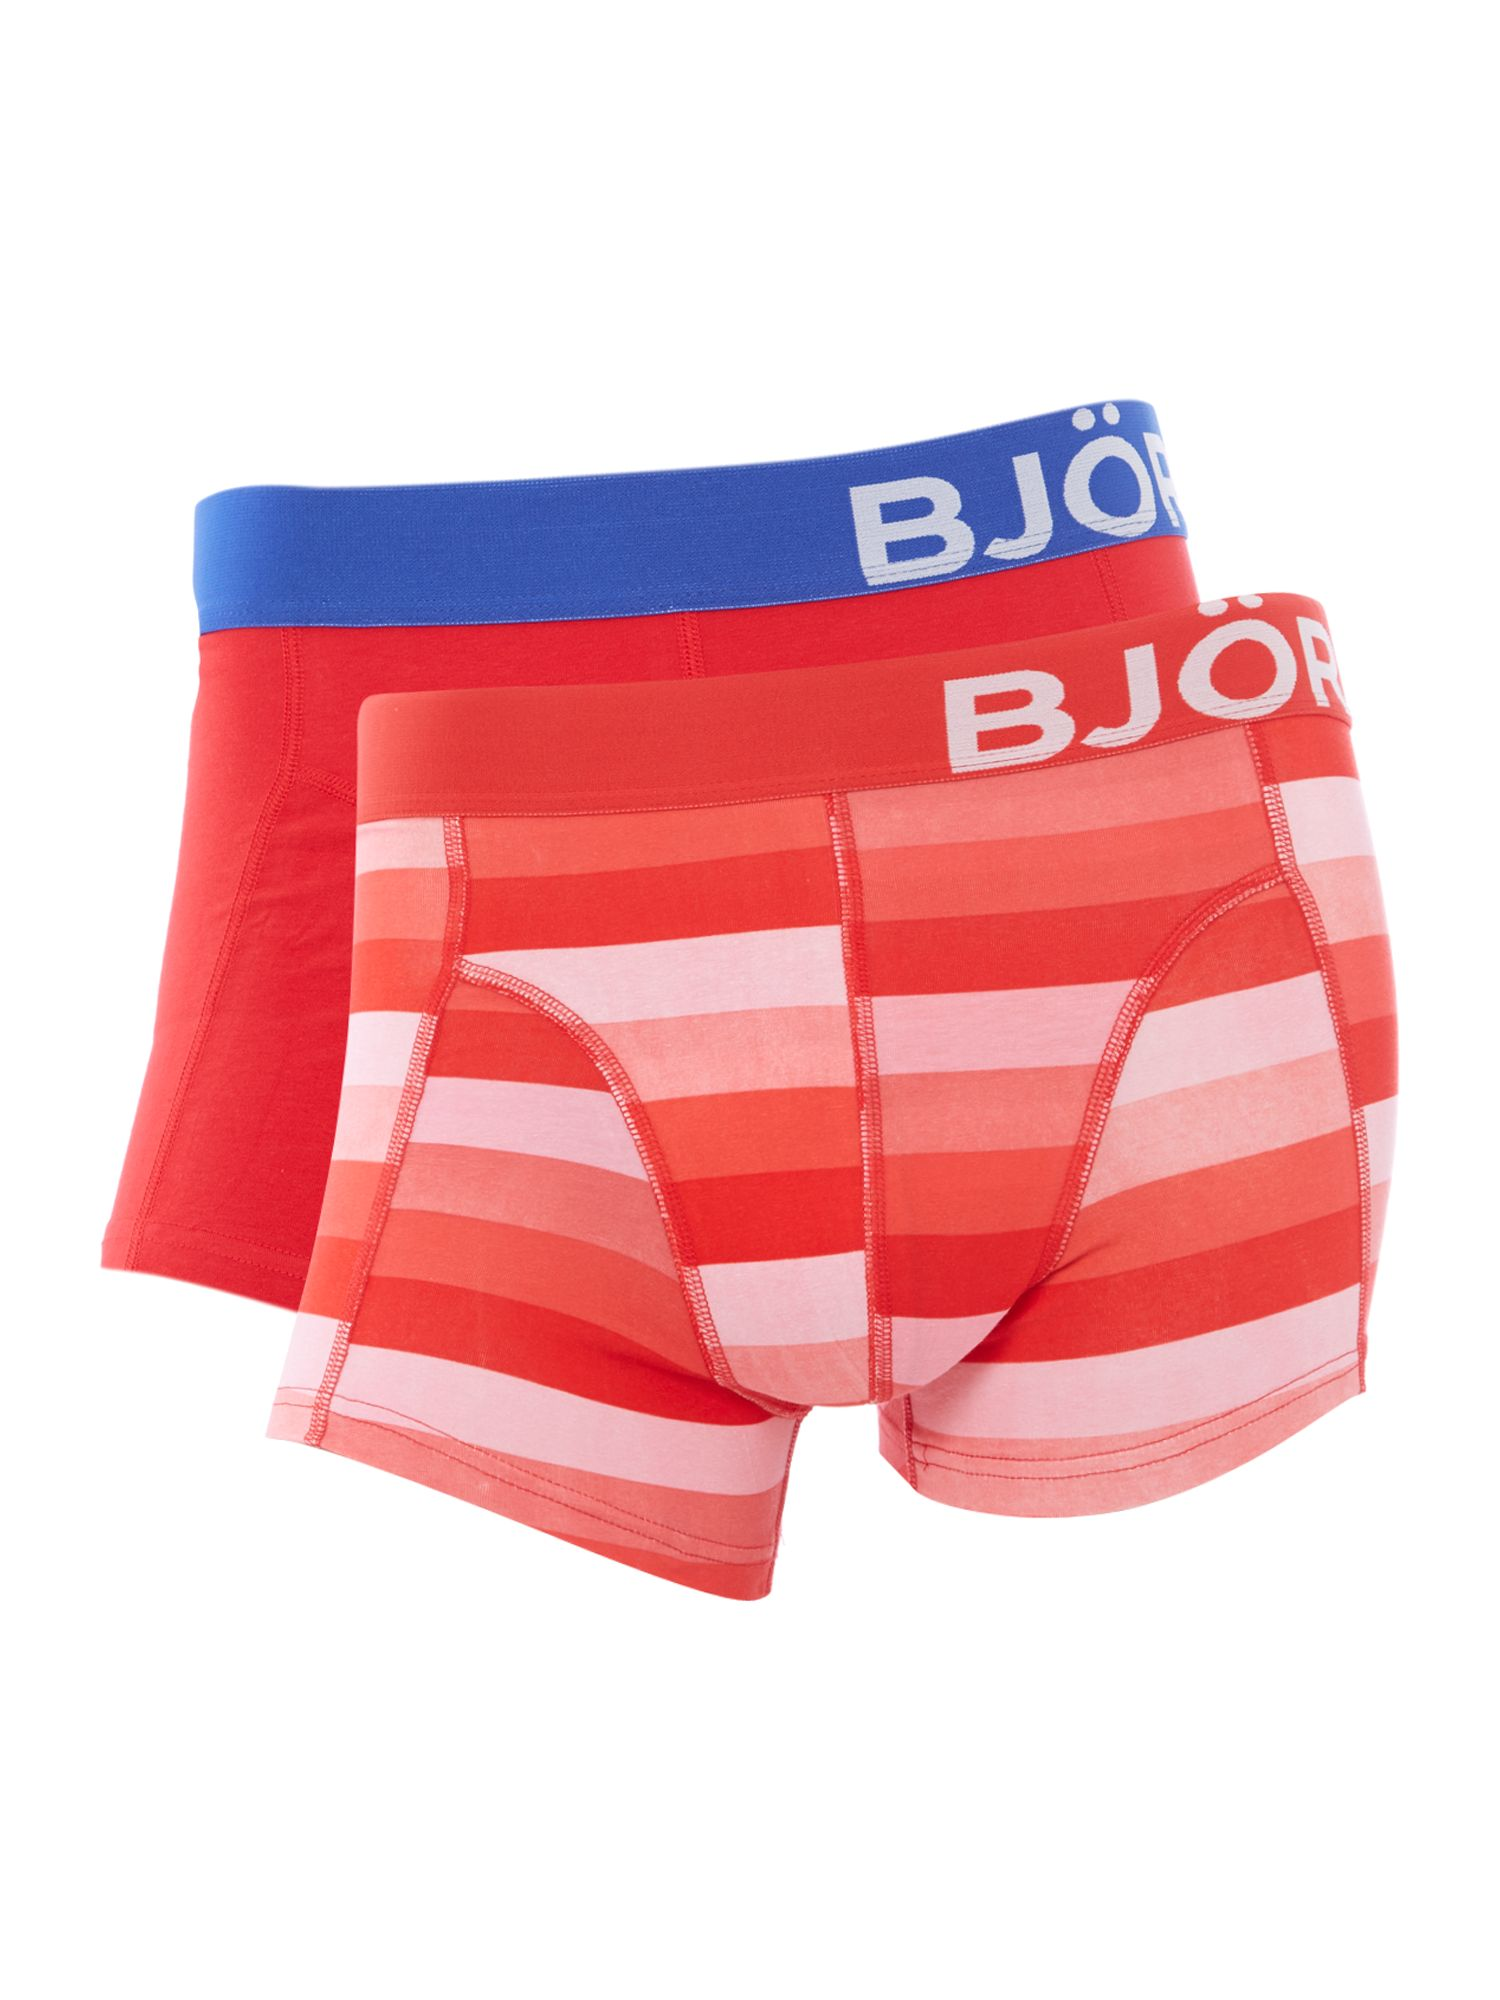 2 pack stripe and solid underwear trunk